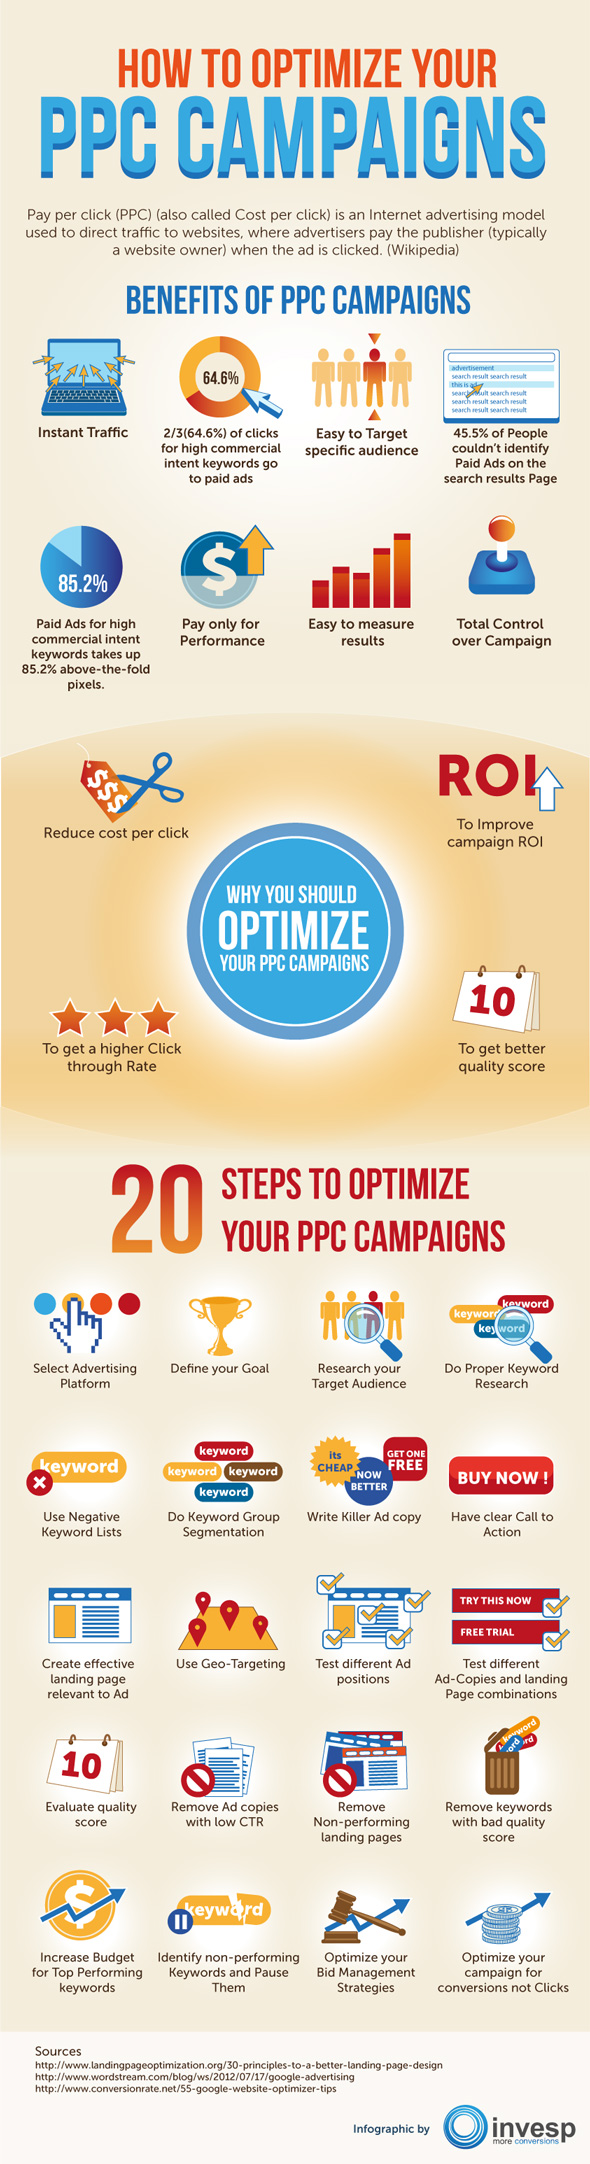 How To Optimize Your PPC Campaigns